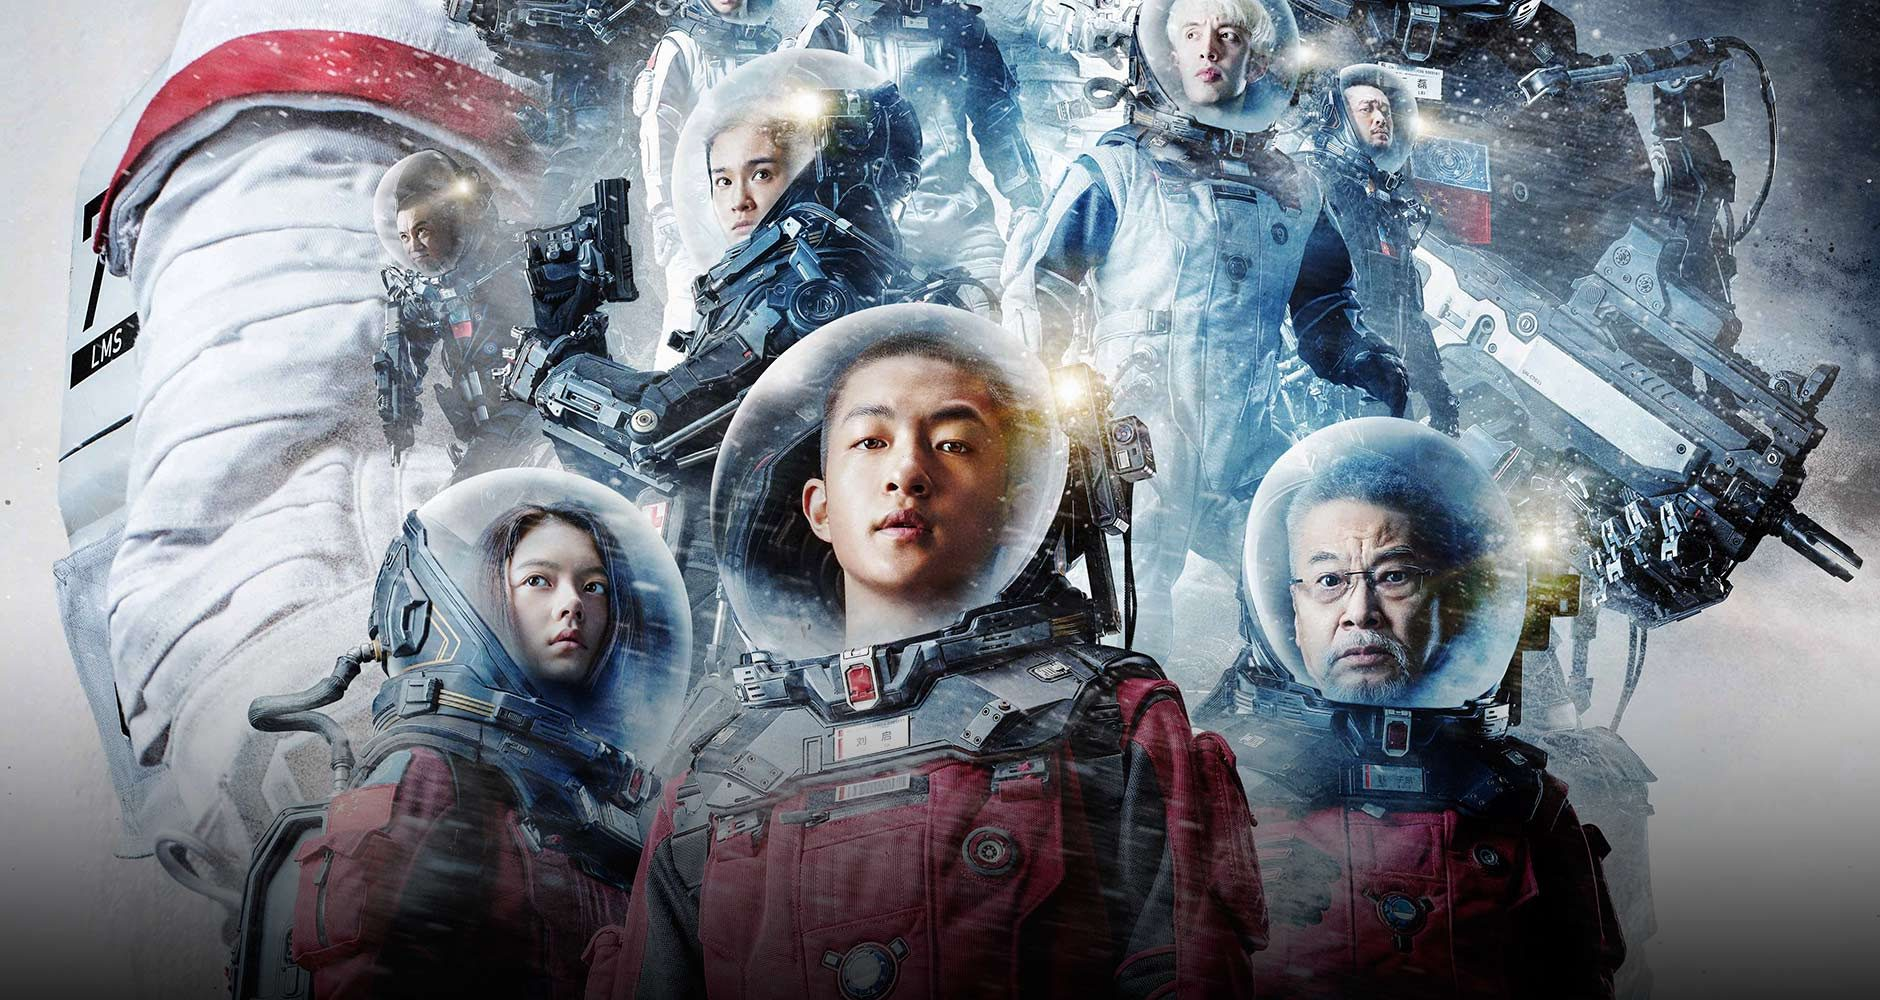 The Wandering Earth best action movies on netflix